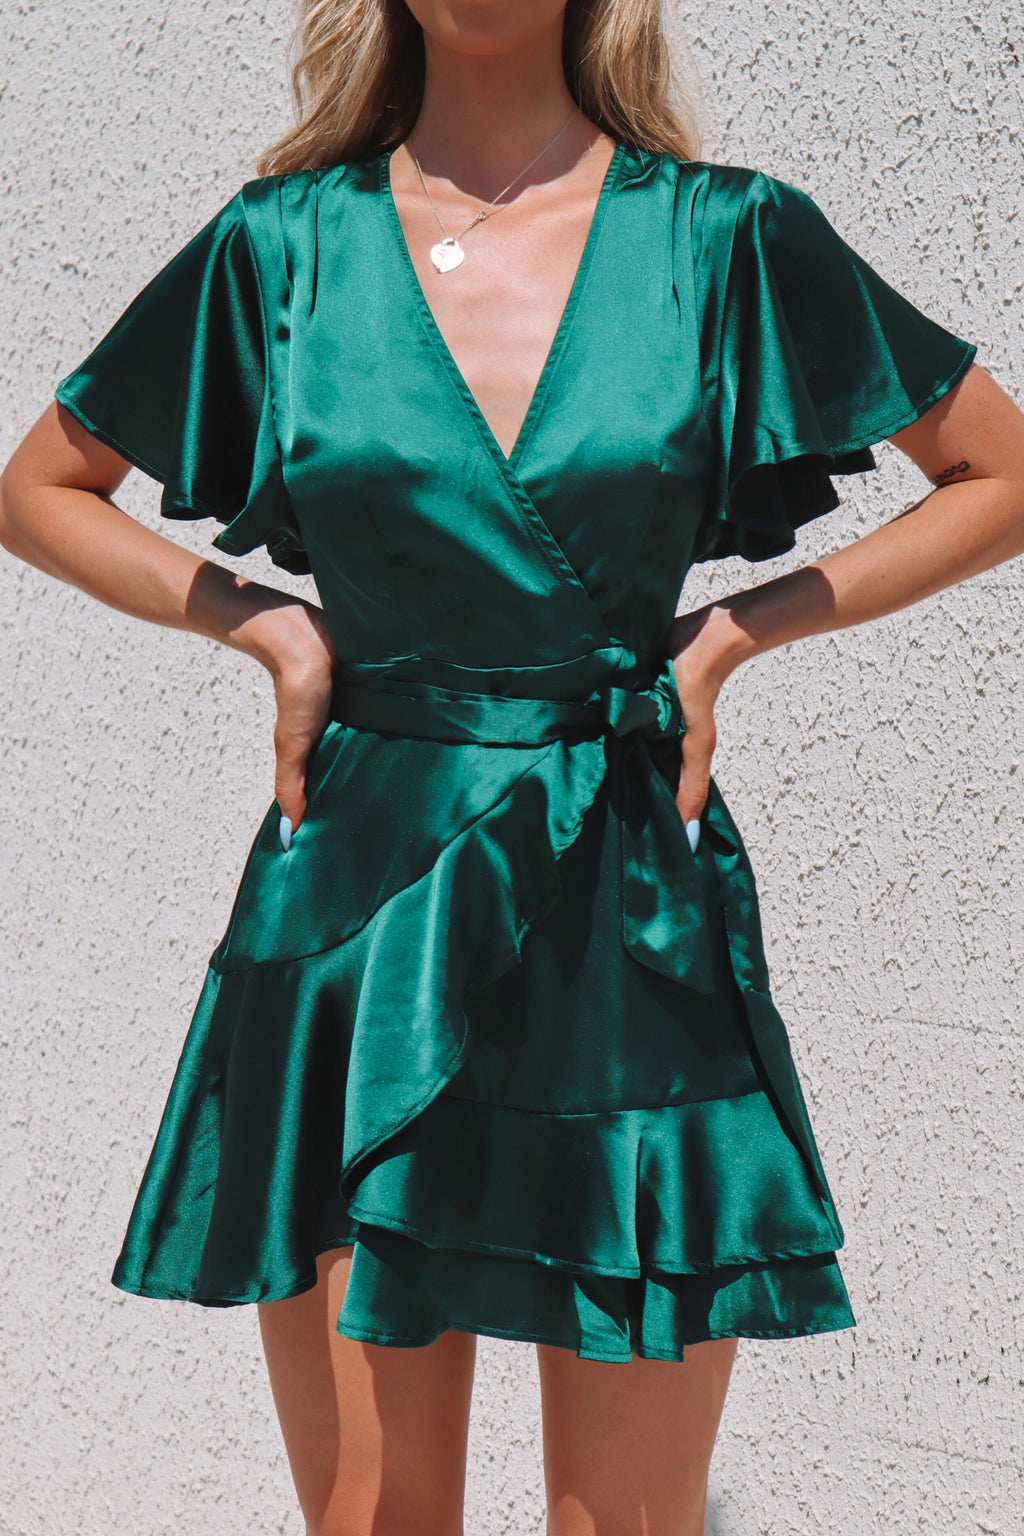 Satin Butterfly Dress - Emerald - Runway Goddess